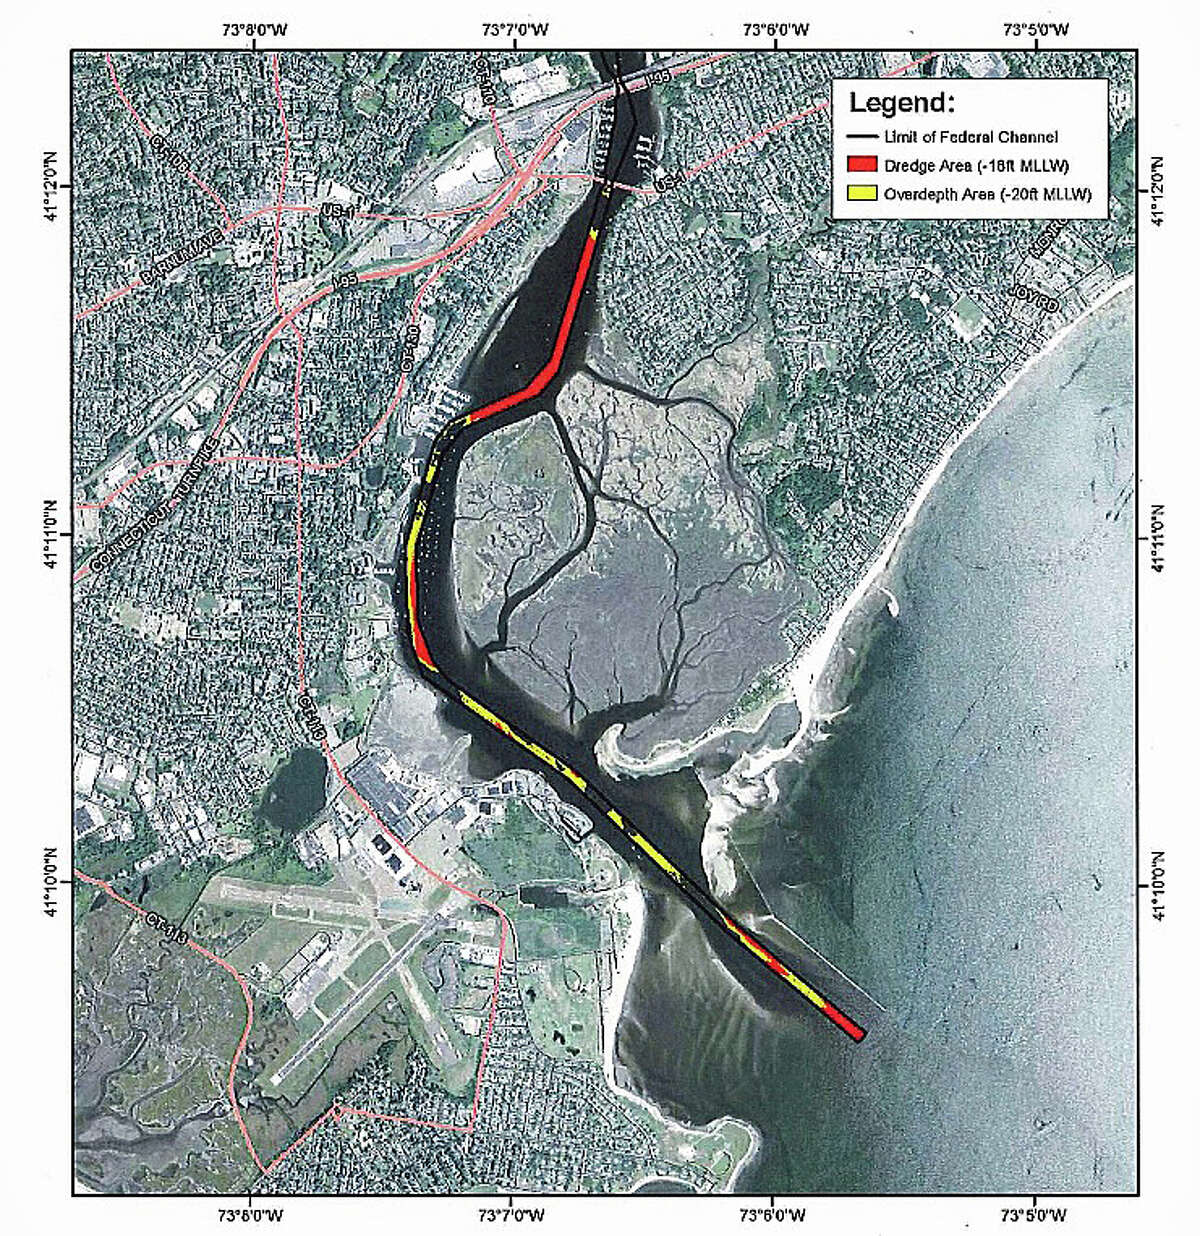 Areas in red show where the U.S. Army Corps of Engineers proposes to dredge in the Housatonic River between Stratford and Milford. The proposed work involves removal of up to 300,000 cubic yards of sandy material from portions of the 18-foot main channel. The work would be from the mouth of the Housatonic at Long Island Sound to a few miles upriver.